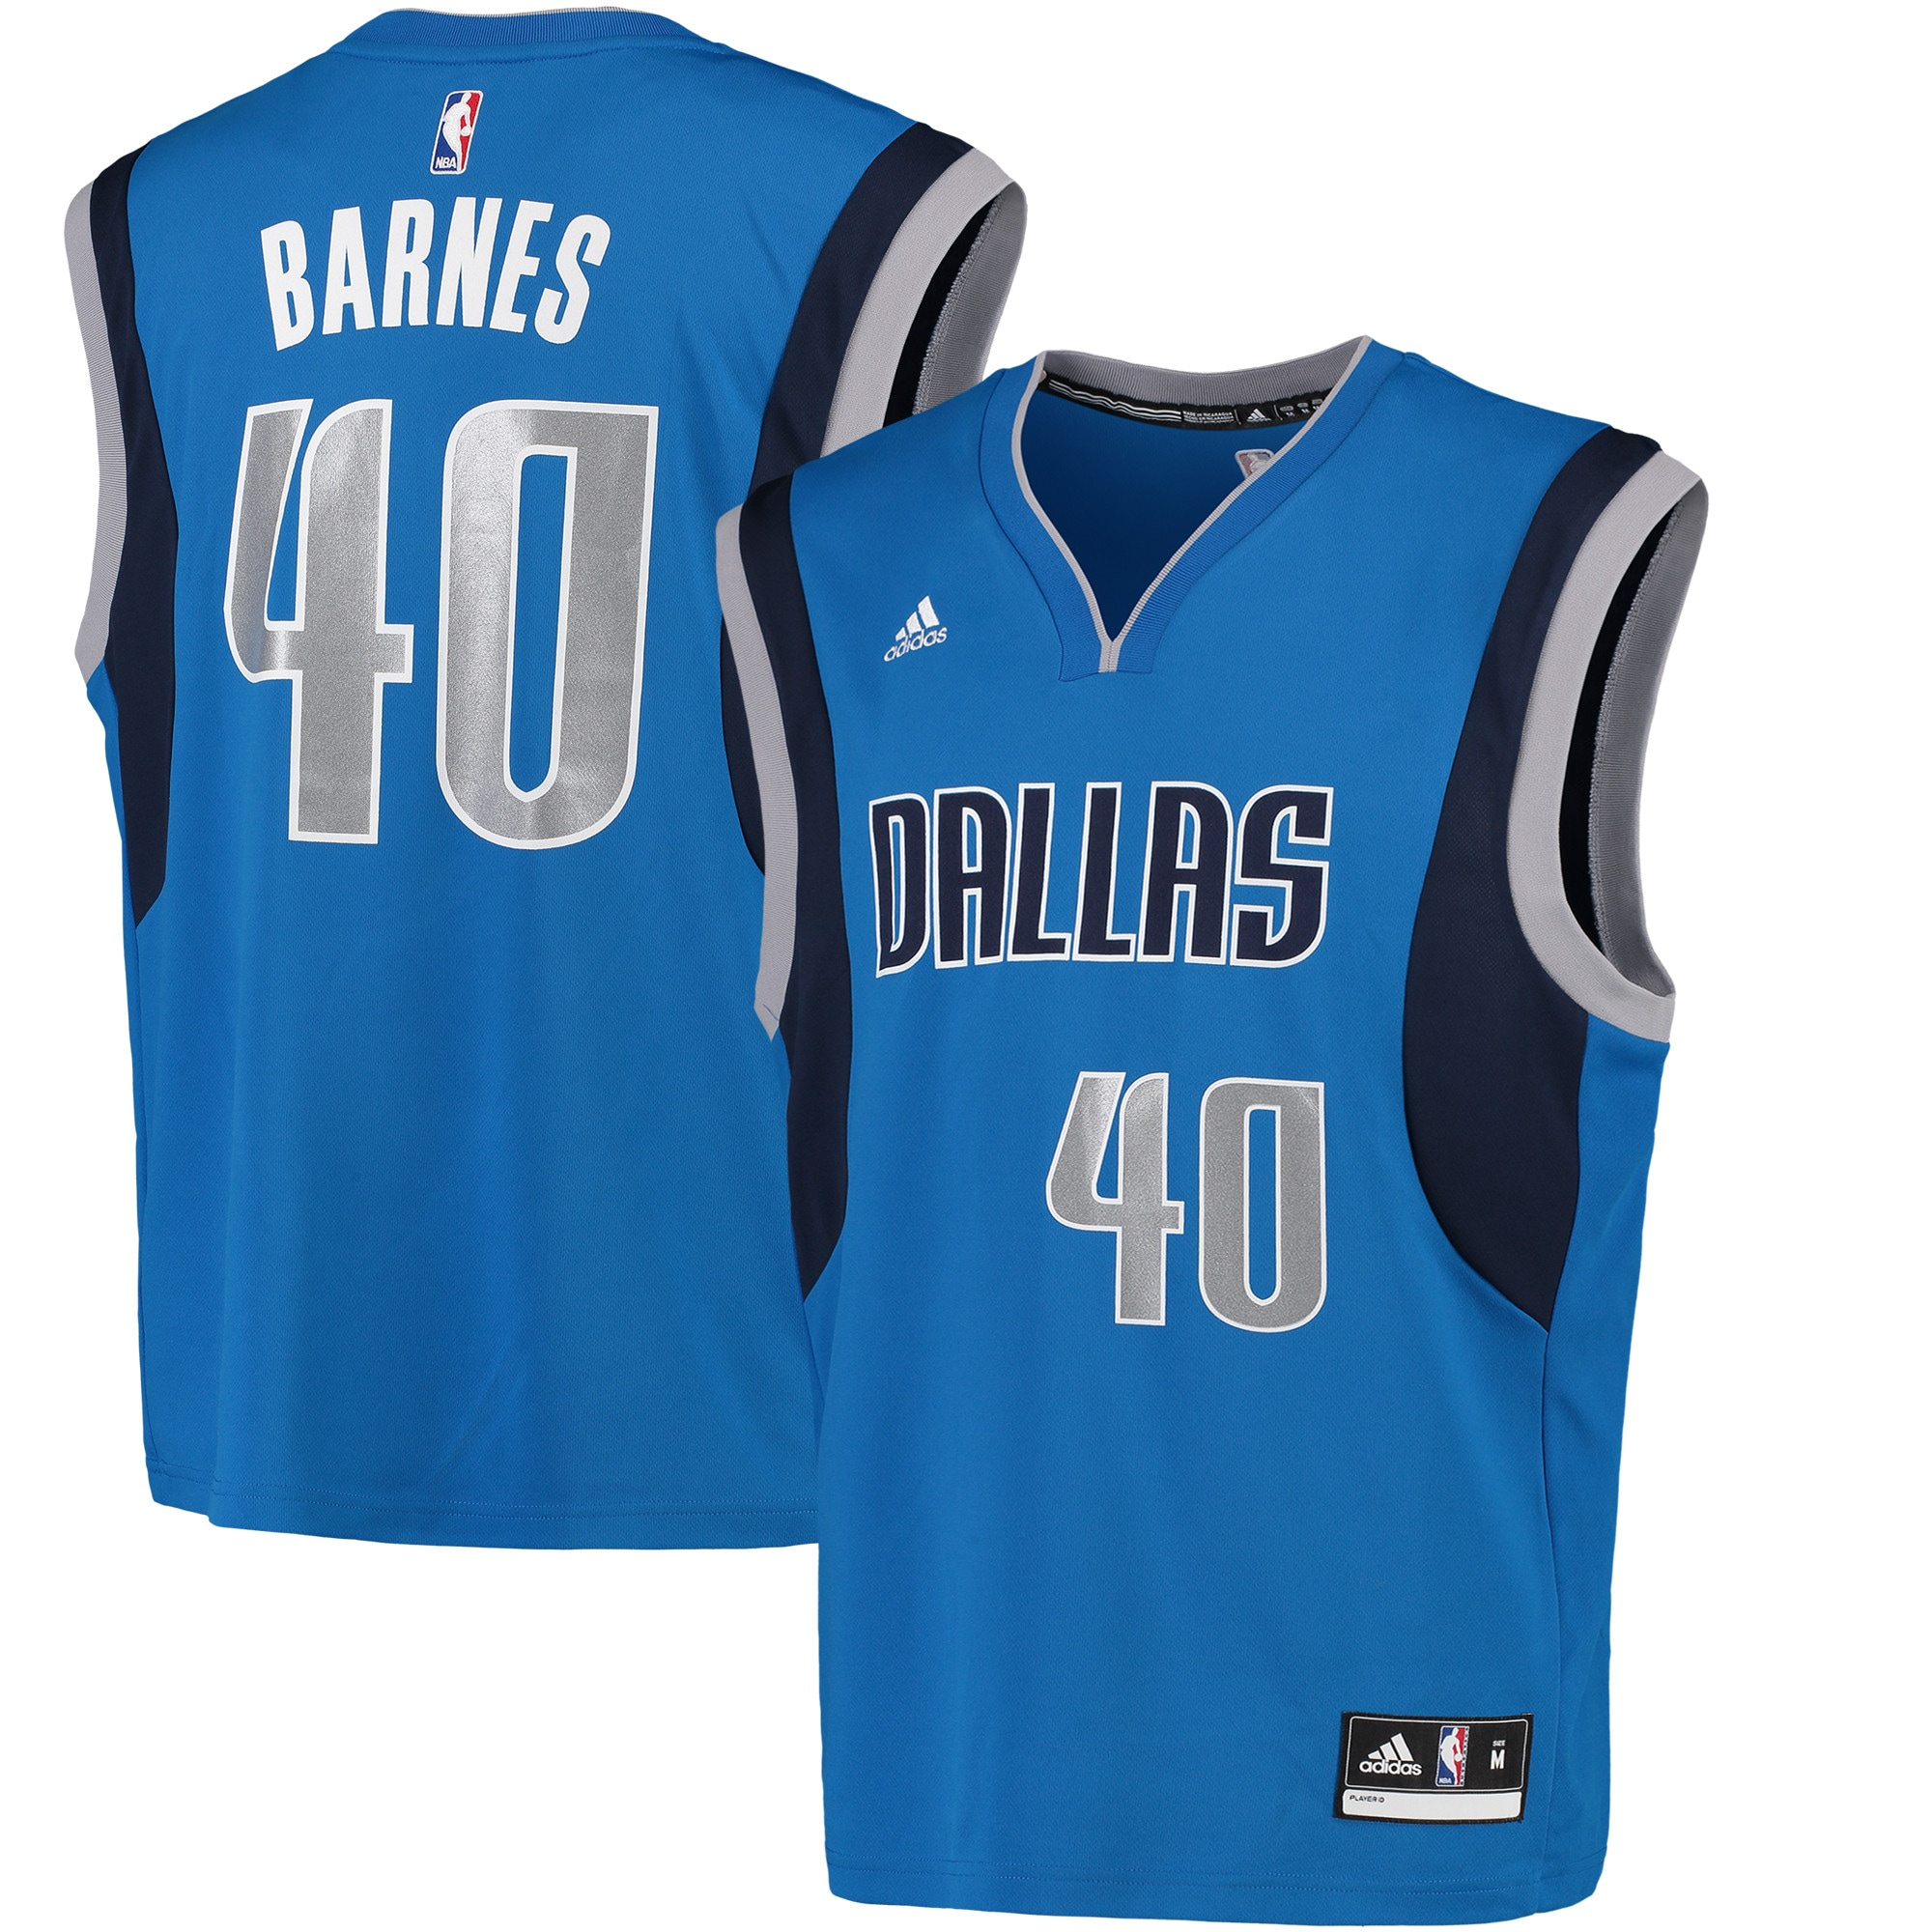 Harrison Barnes Dallas Mavericks adidas Replica Jersey - Blue